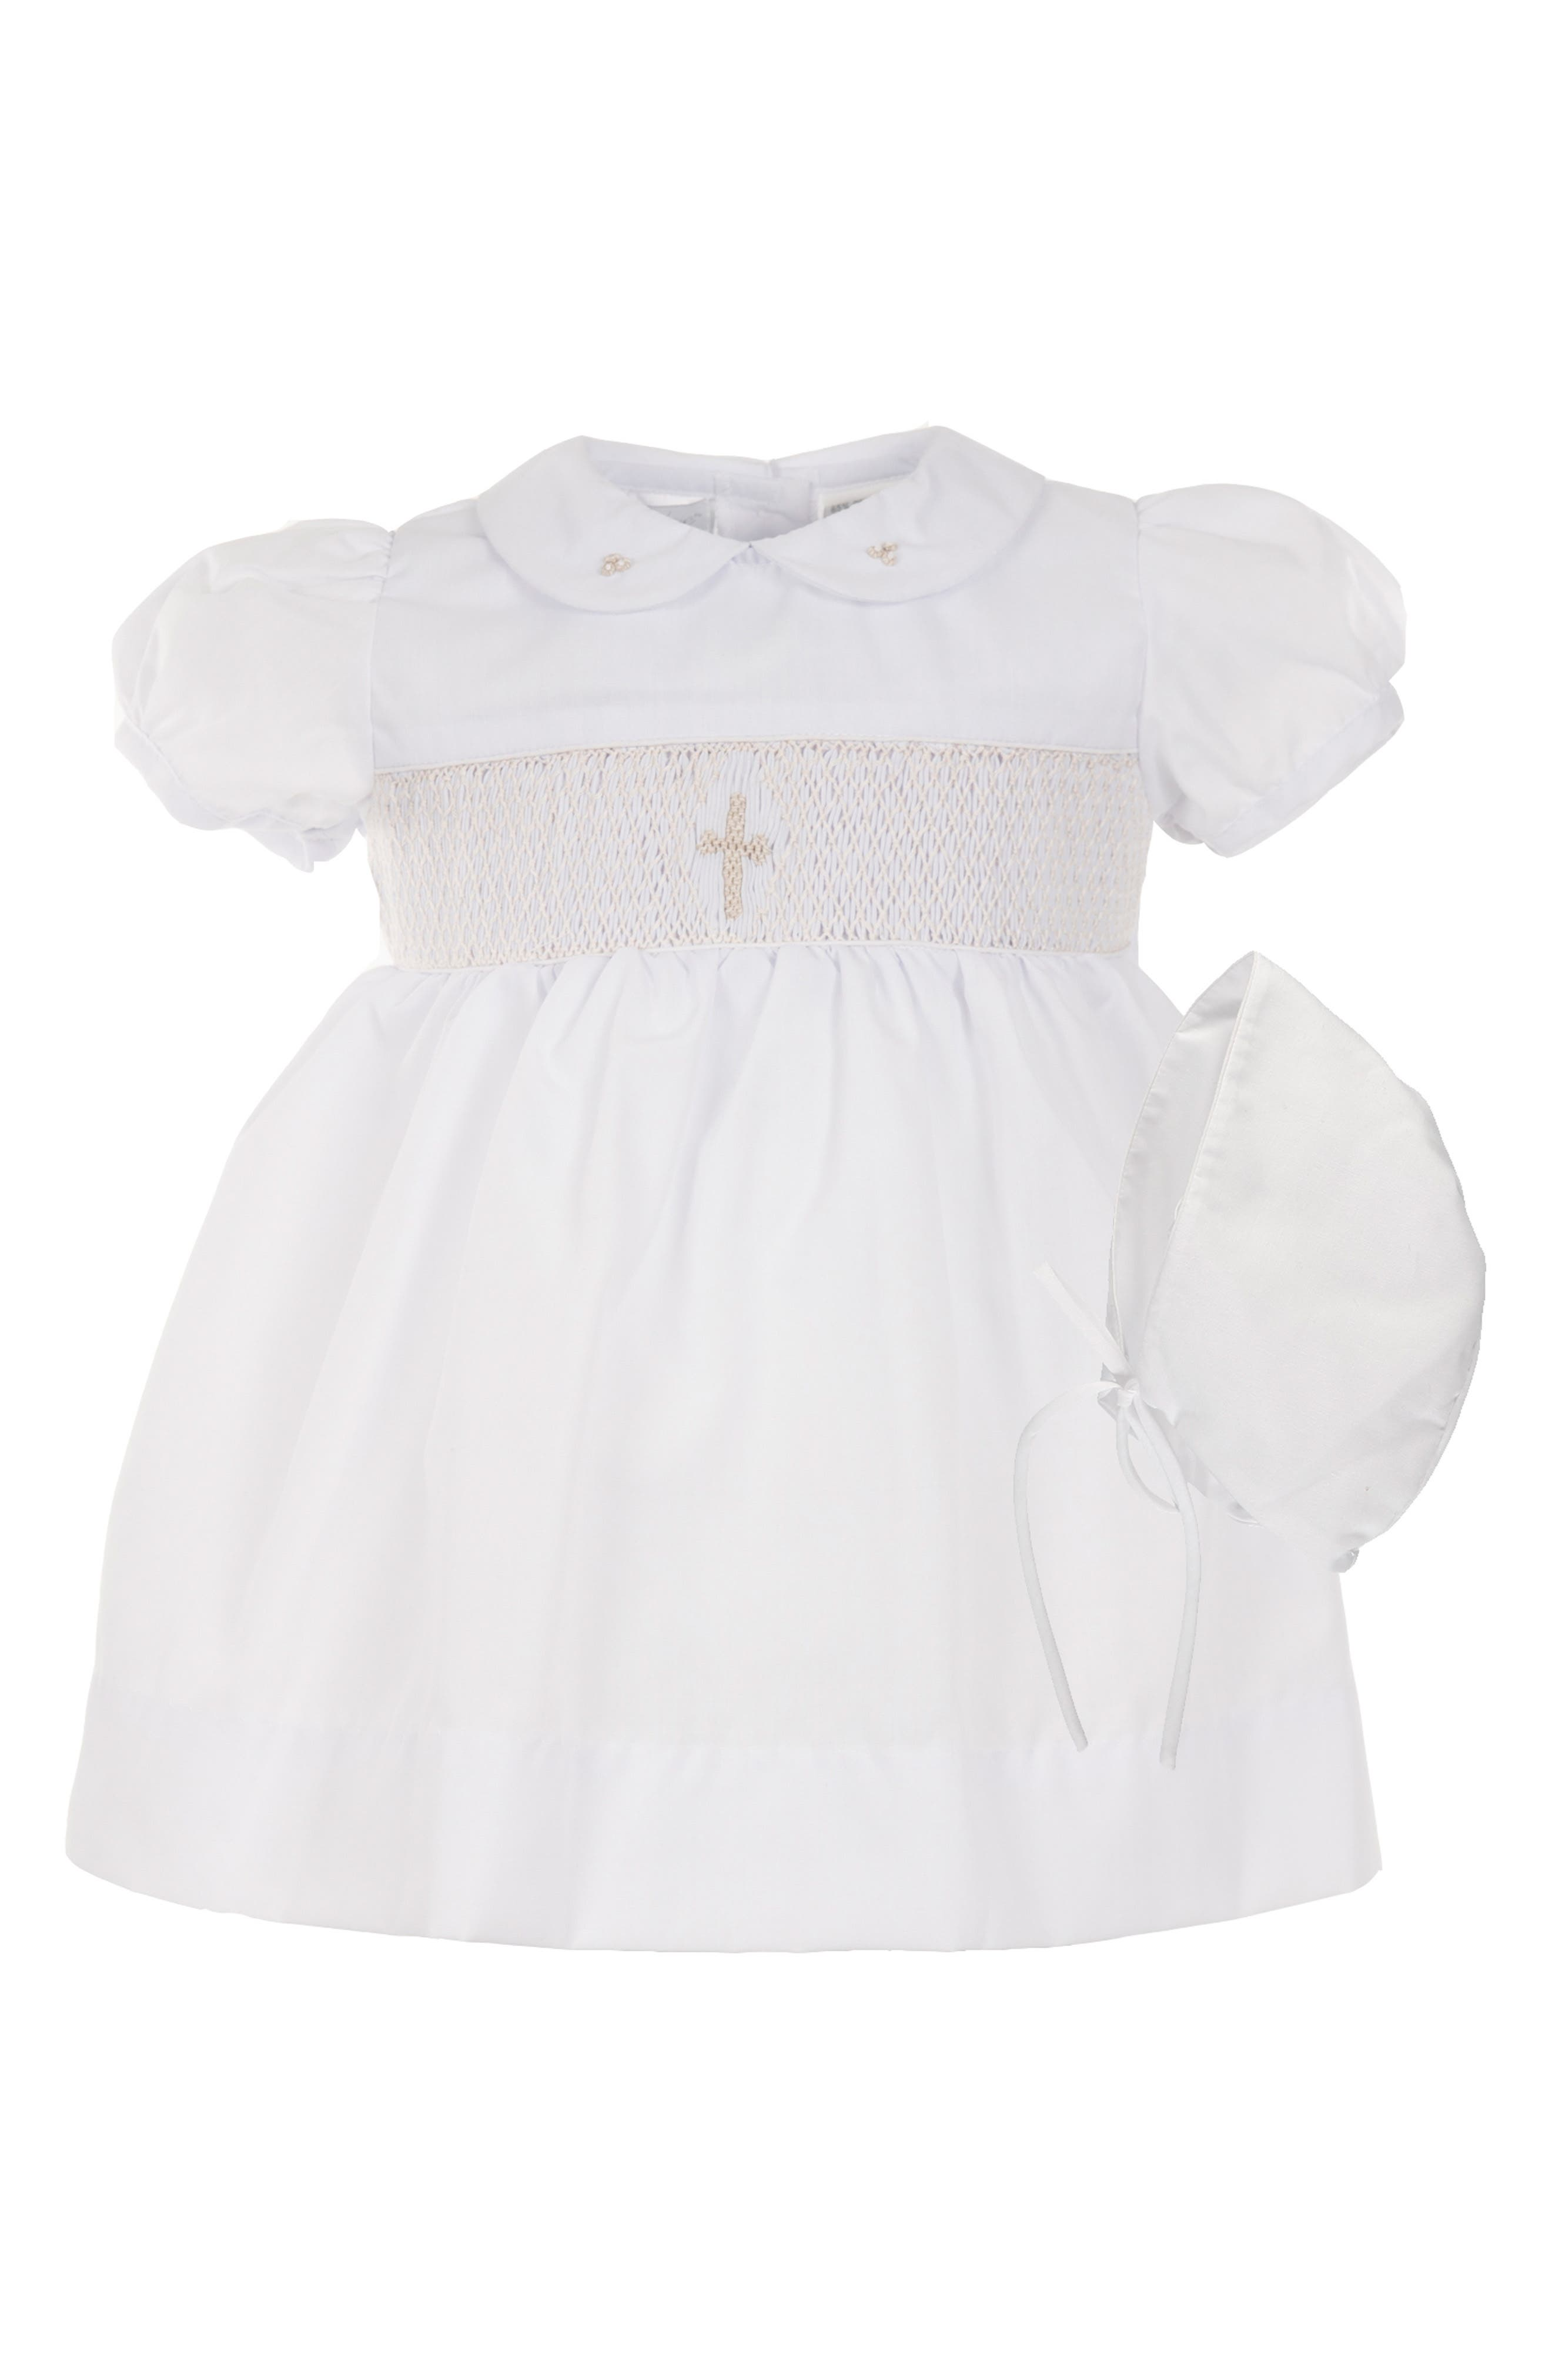 CARRIAGE BOUTIQUE Smocked Inset Christening Gown & Bonnet Set, Main, color, 100